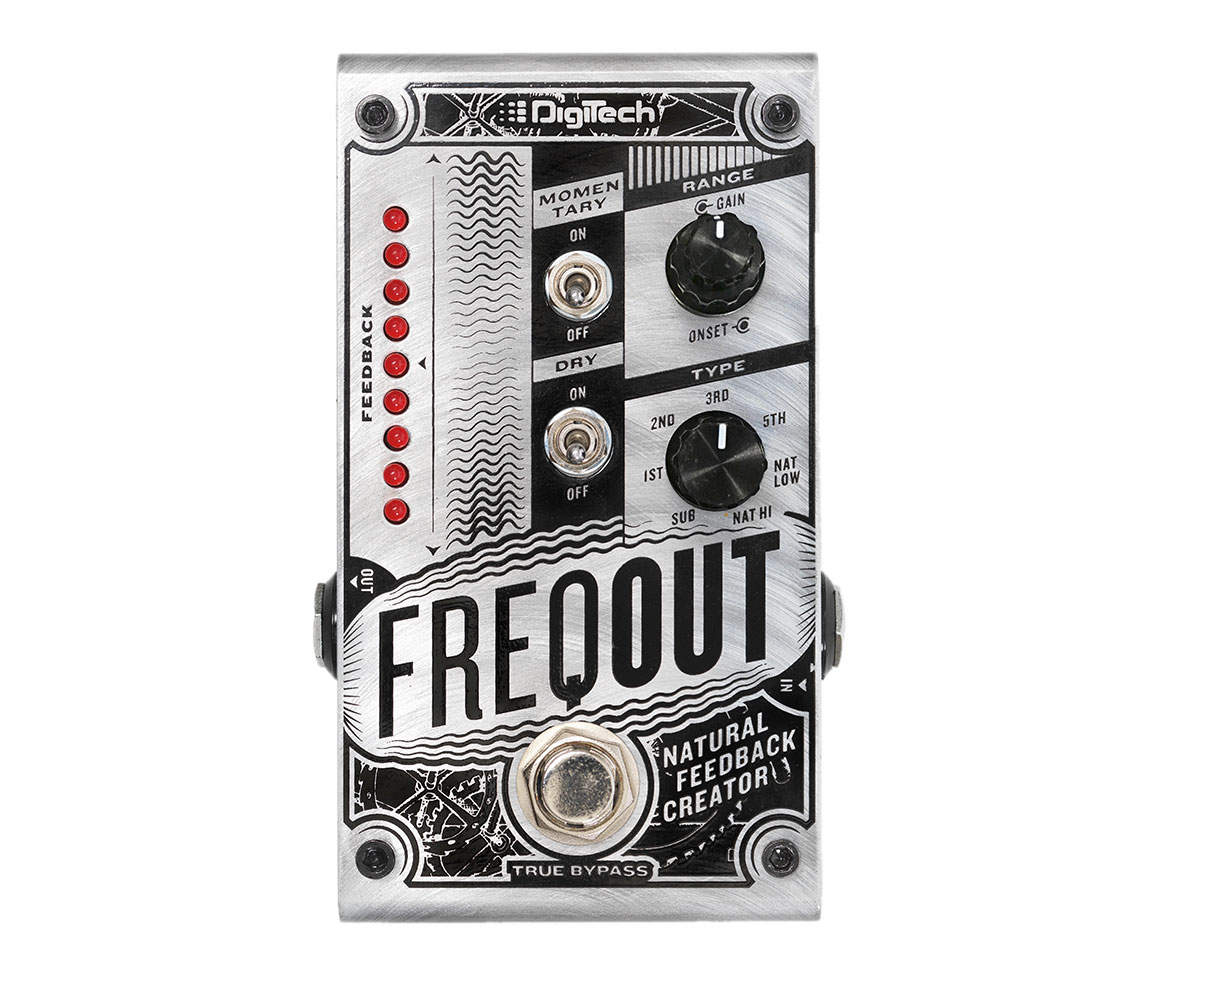 DigiTech FreqOut Frequency Dynamic Feedback Generator Pedal by